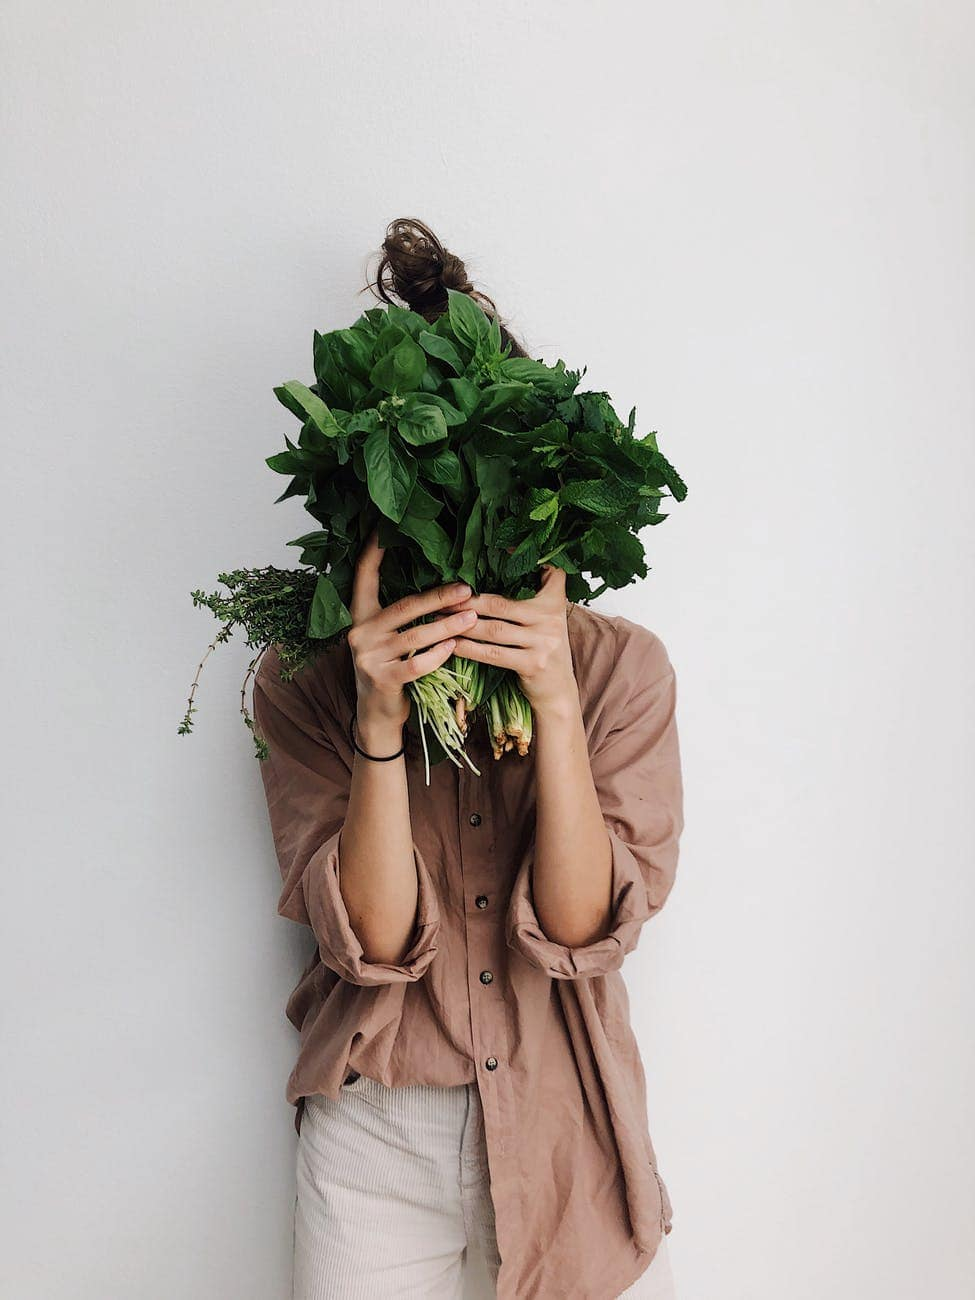 3 Reasons to Eat Whole Foods